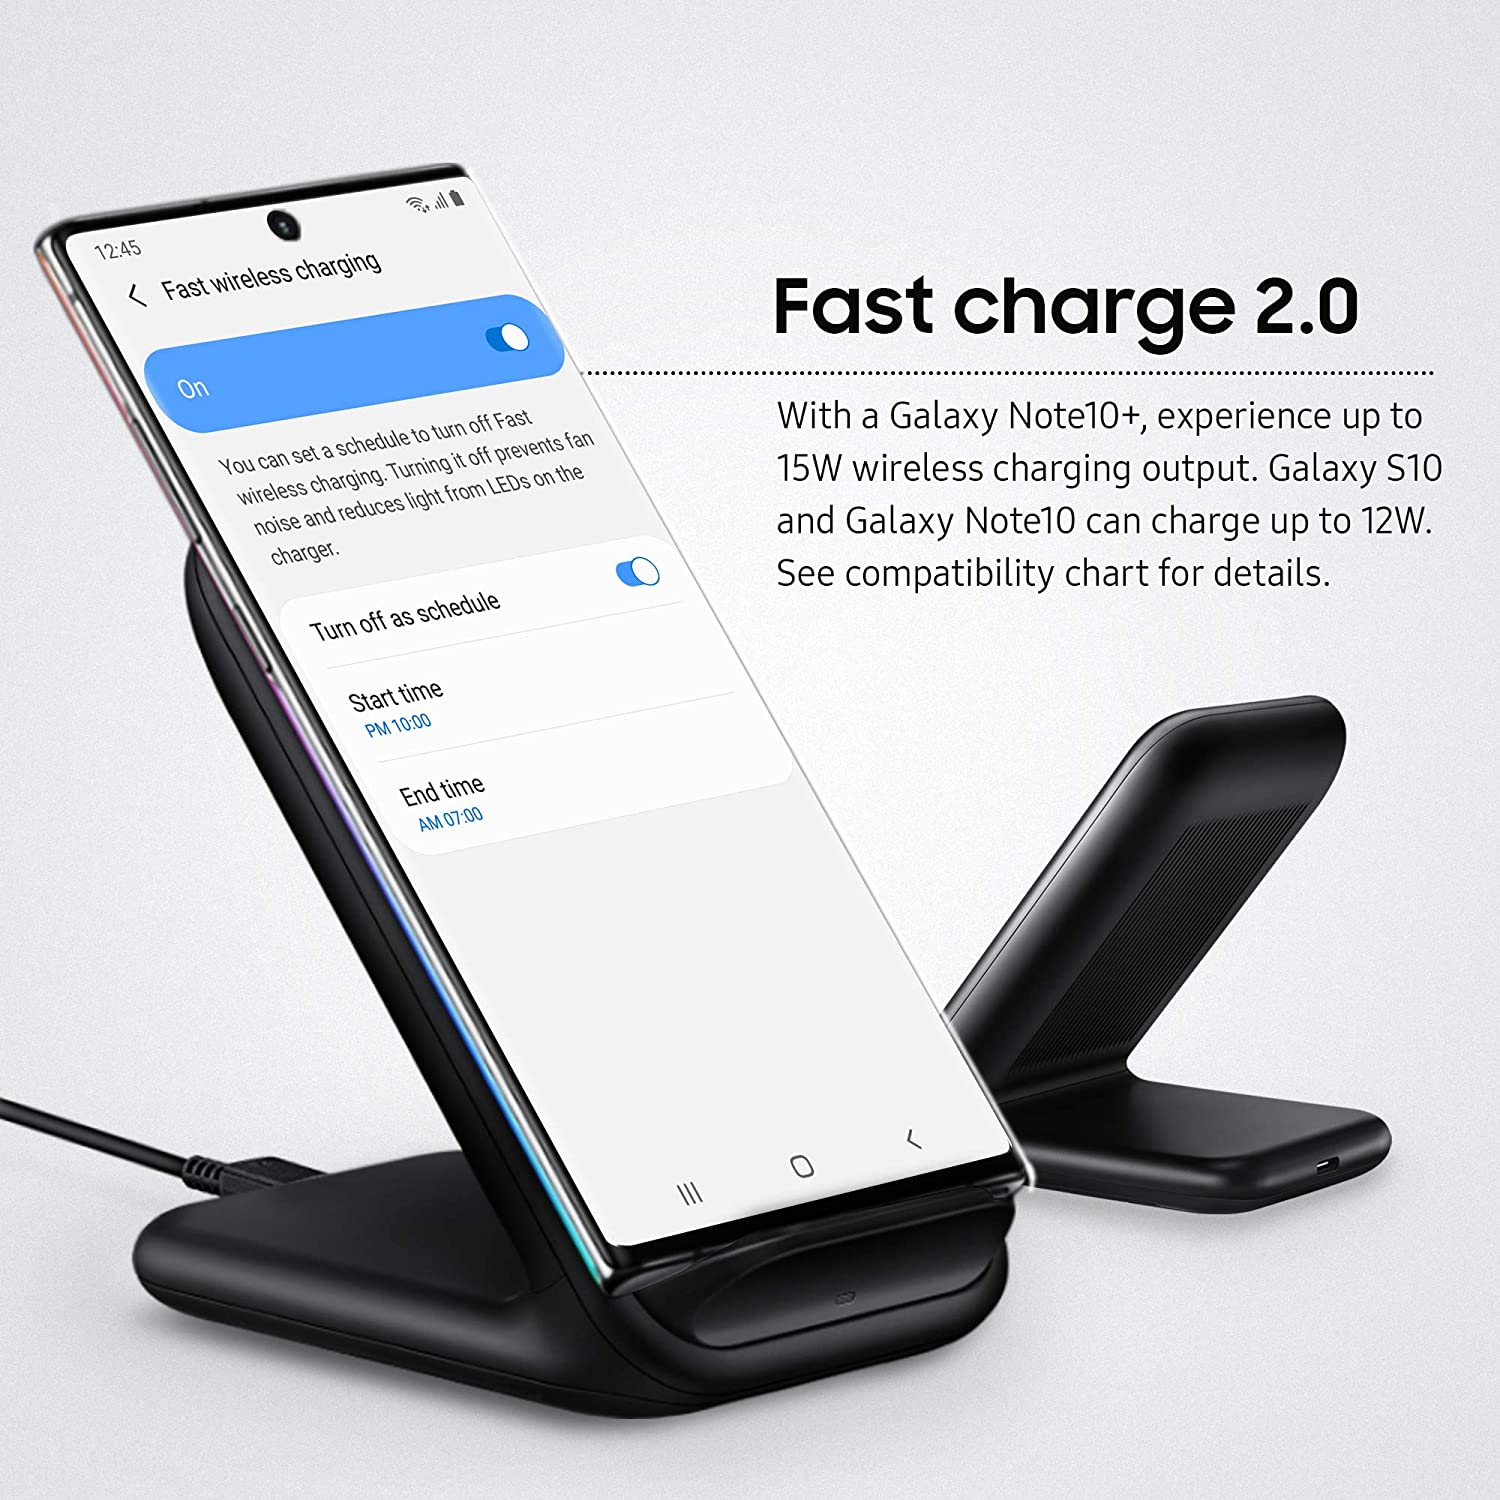 Samsung 15W Fast Charge 2.0 Wireless Charger Stand Black US Version with Warranty